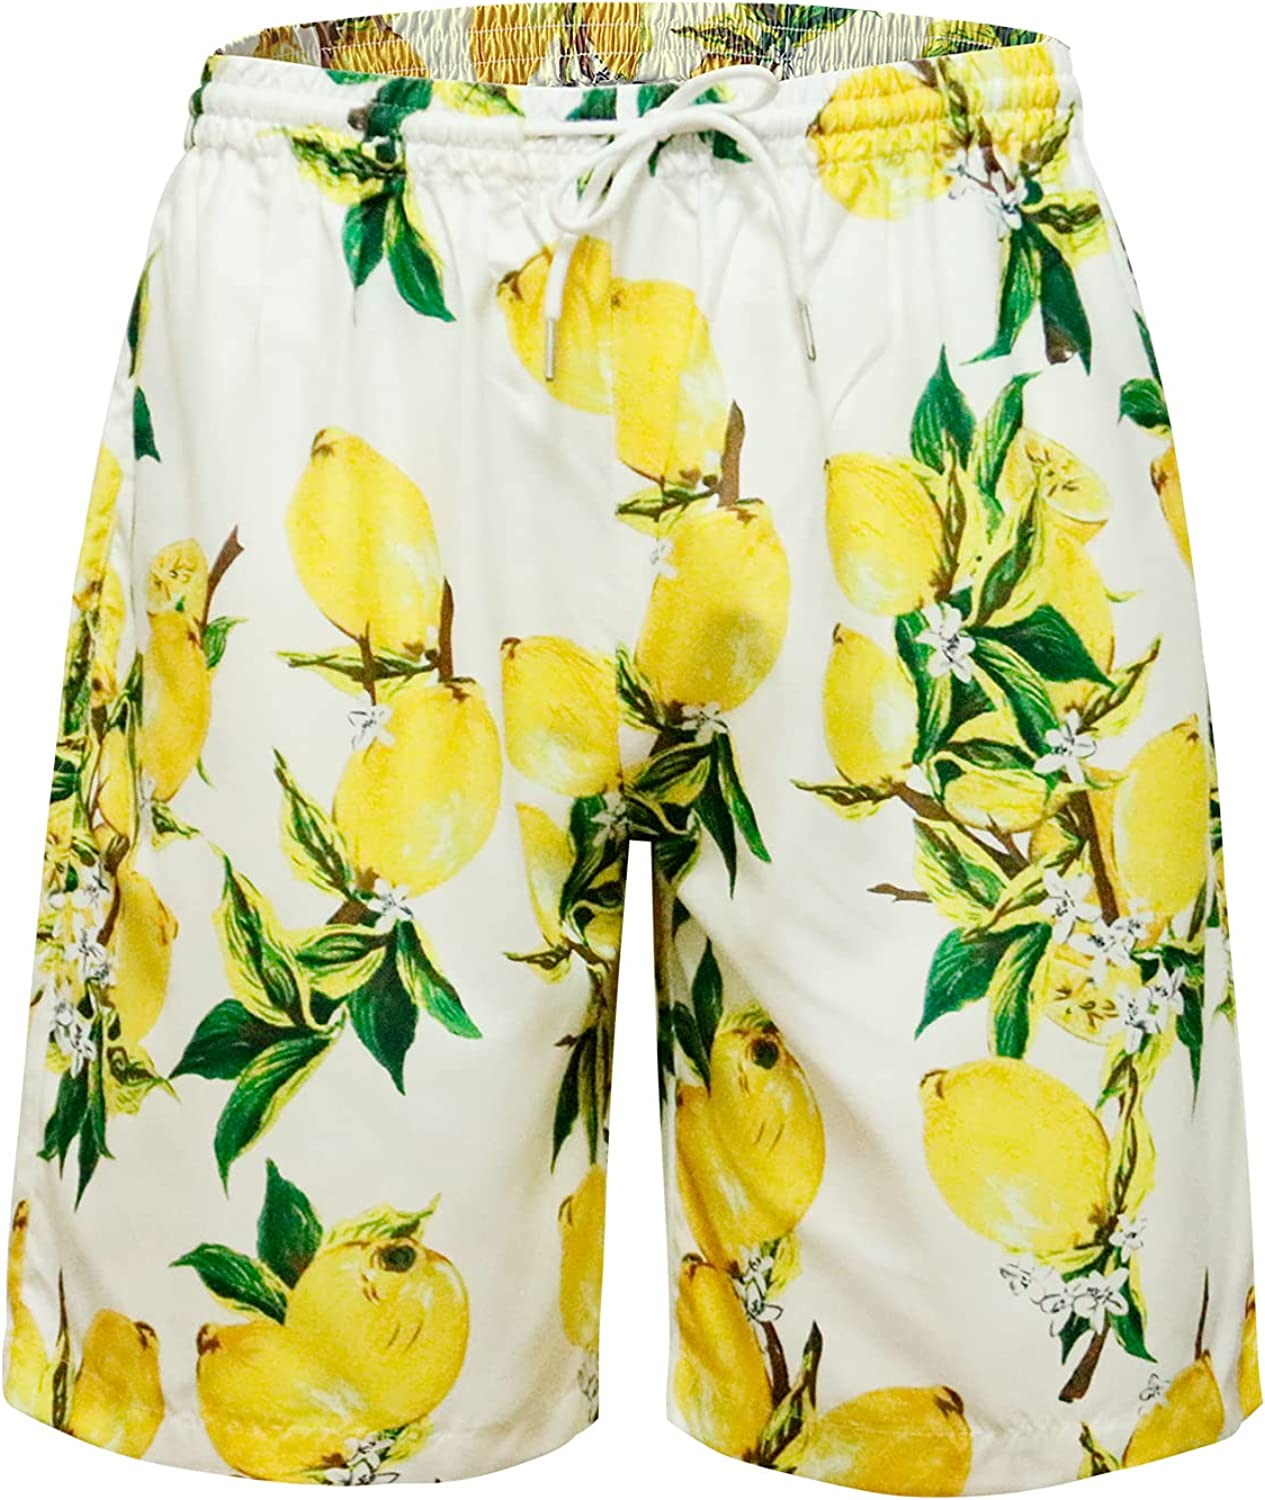 MCULIVOD Men's Swim Trunks Quick Dry Shorts Beach Surf Printed Board Shorts Swimwear Bathing Suits with Pockets